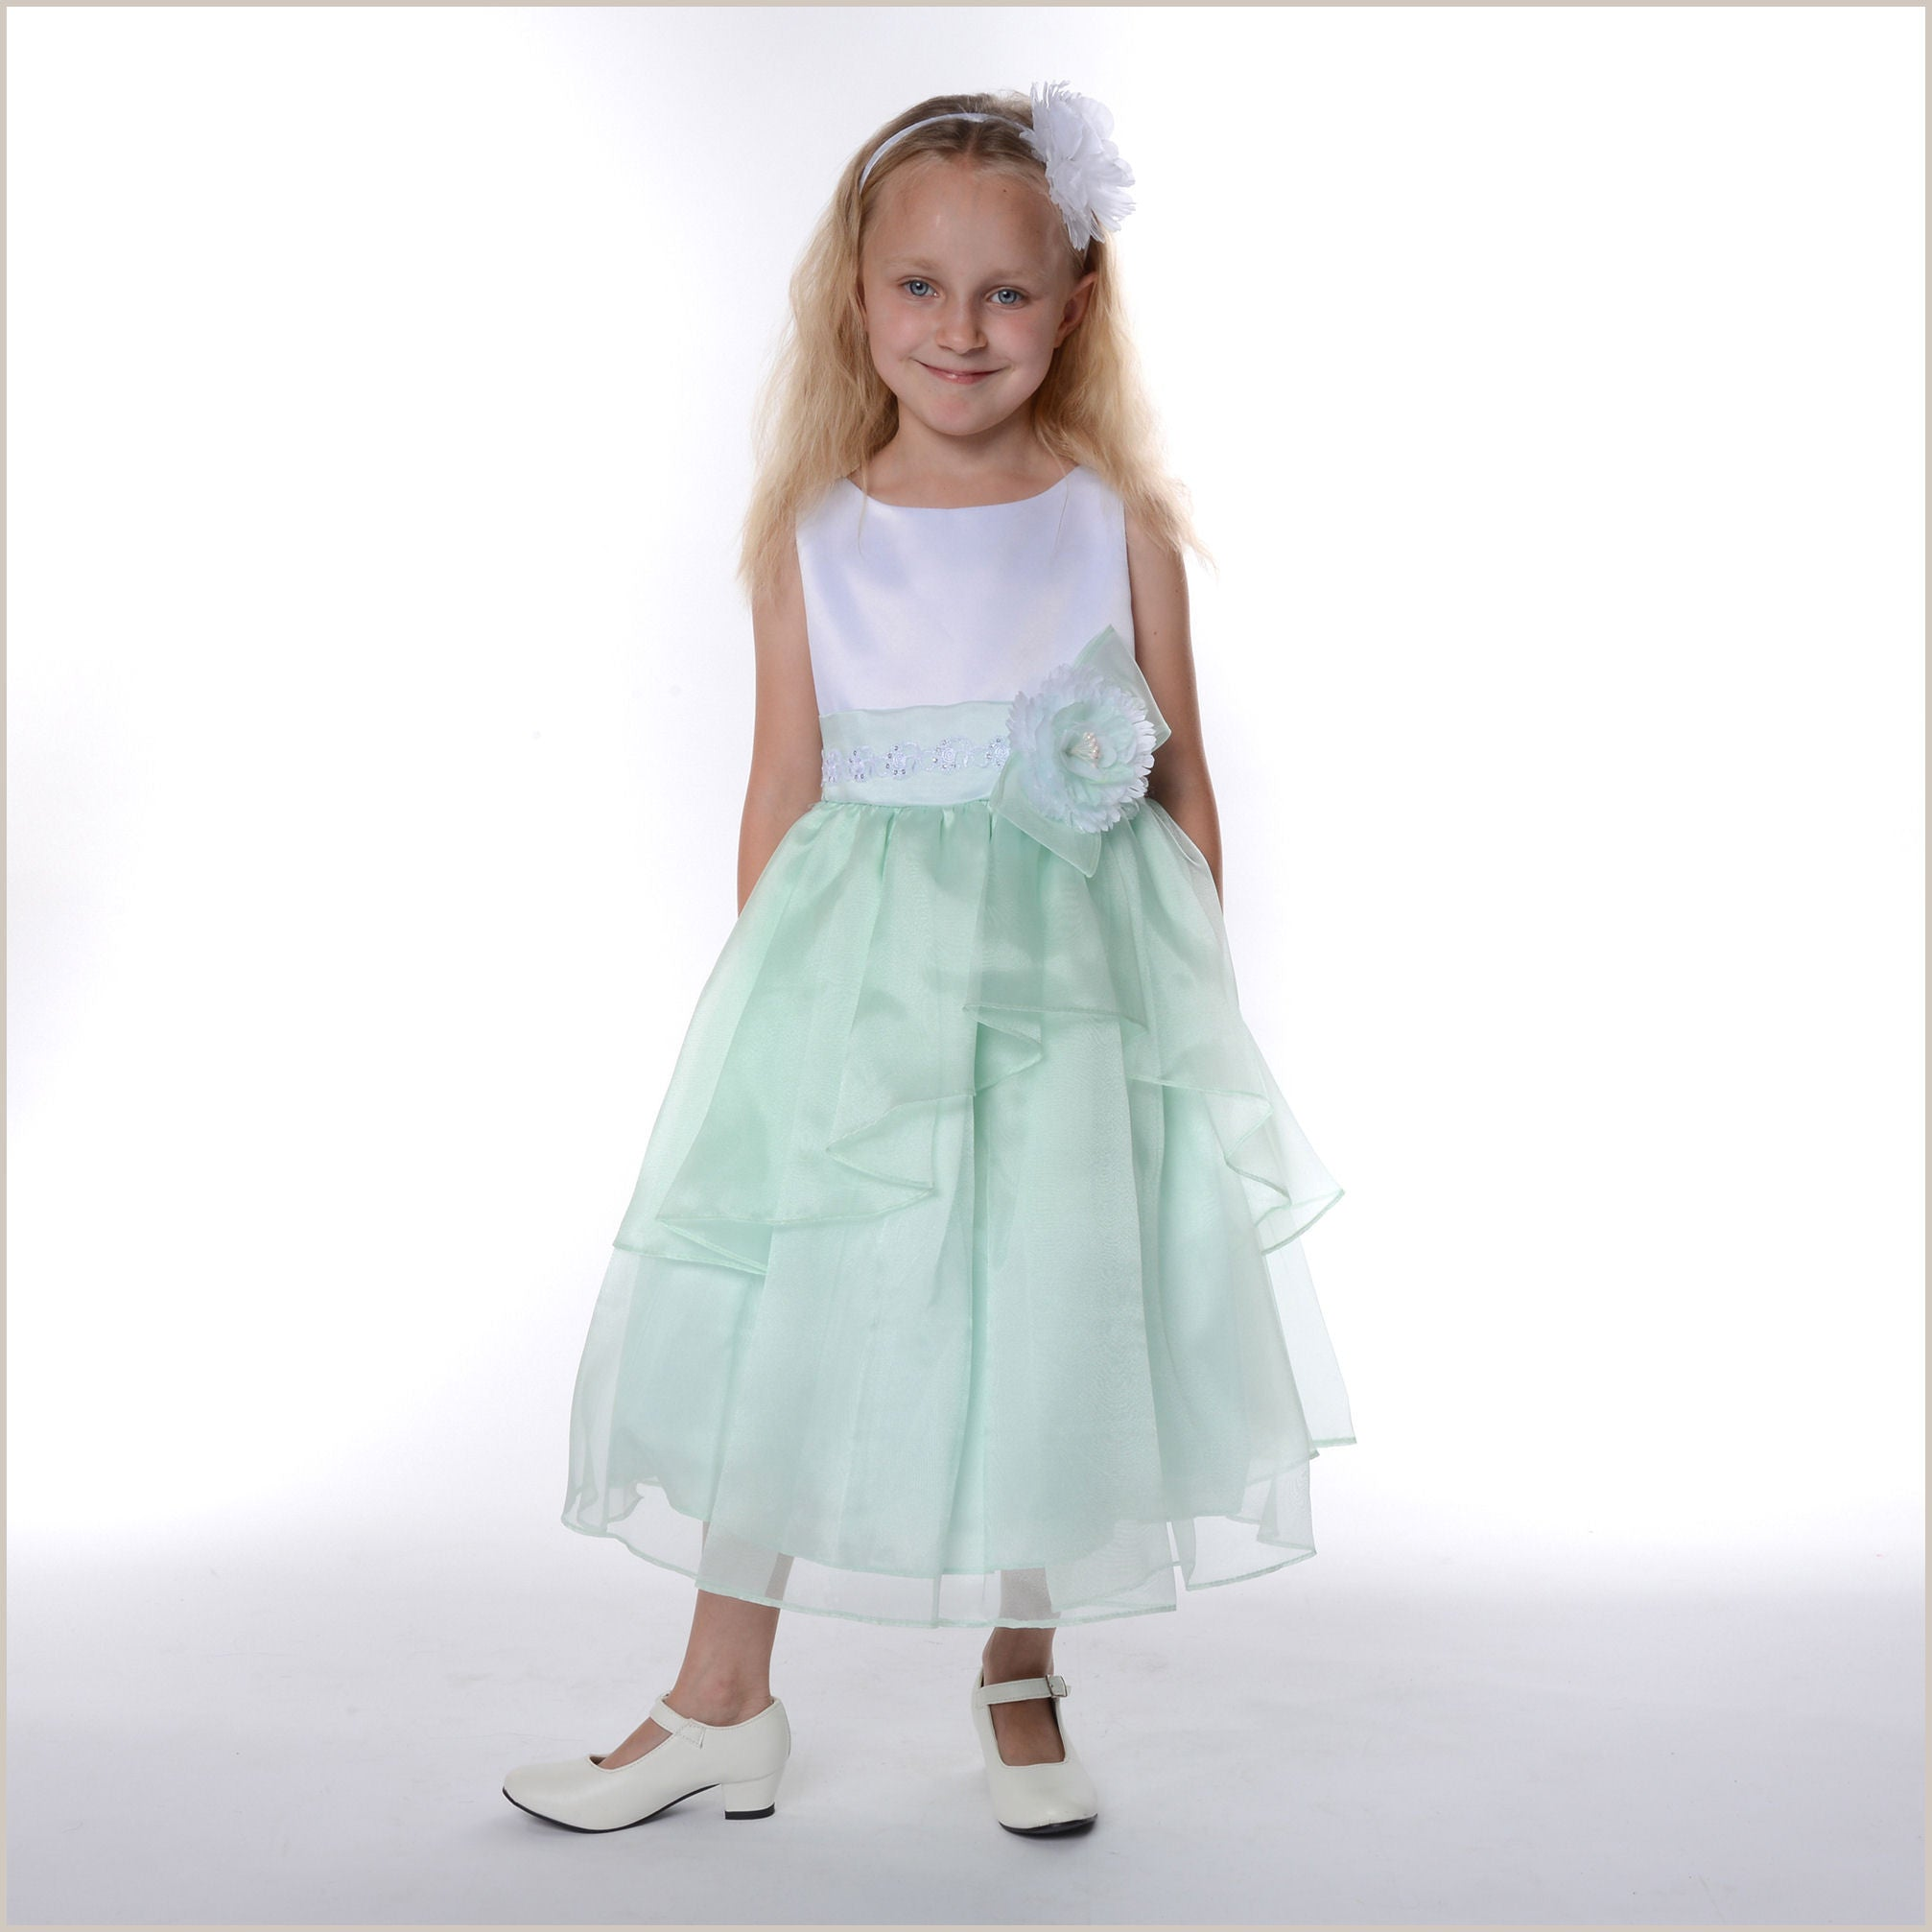 Wedding Mint Flower Girl Dresses zoe green mint white tiered organza flower girl dress dress